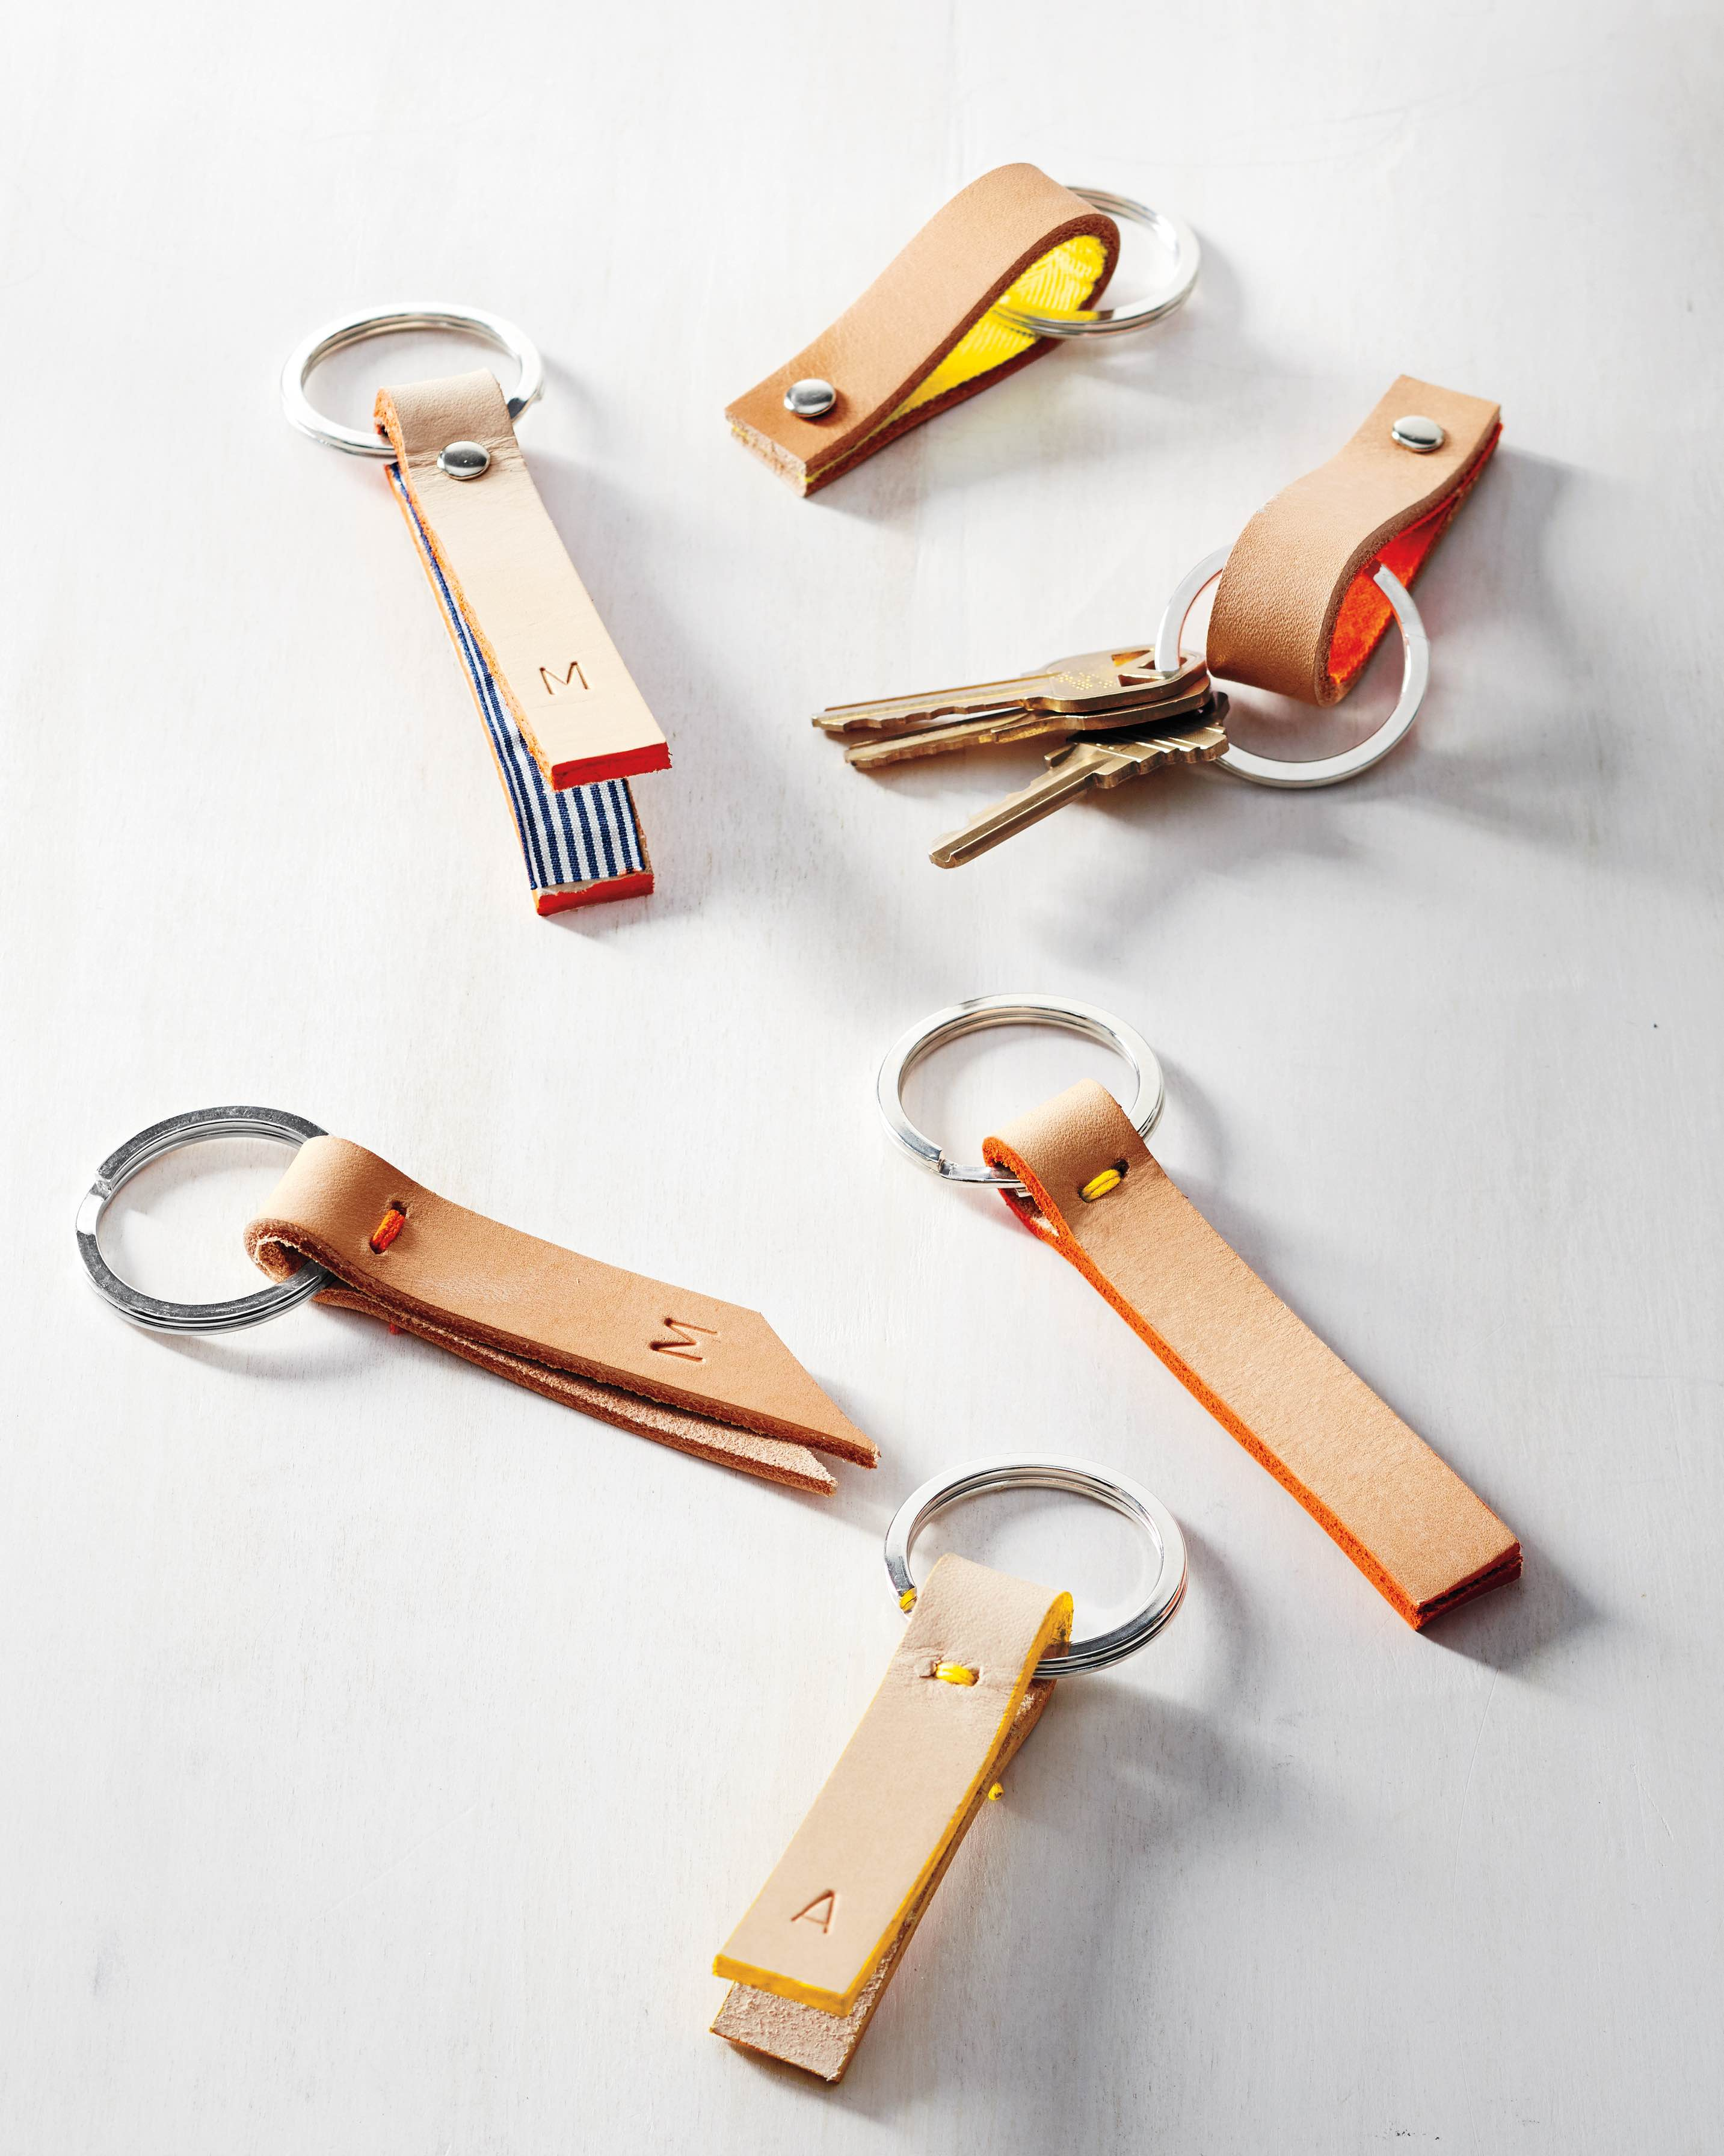 7 DIY Keychains That You Can Personalize for Friends, Family